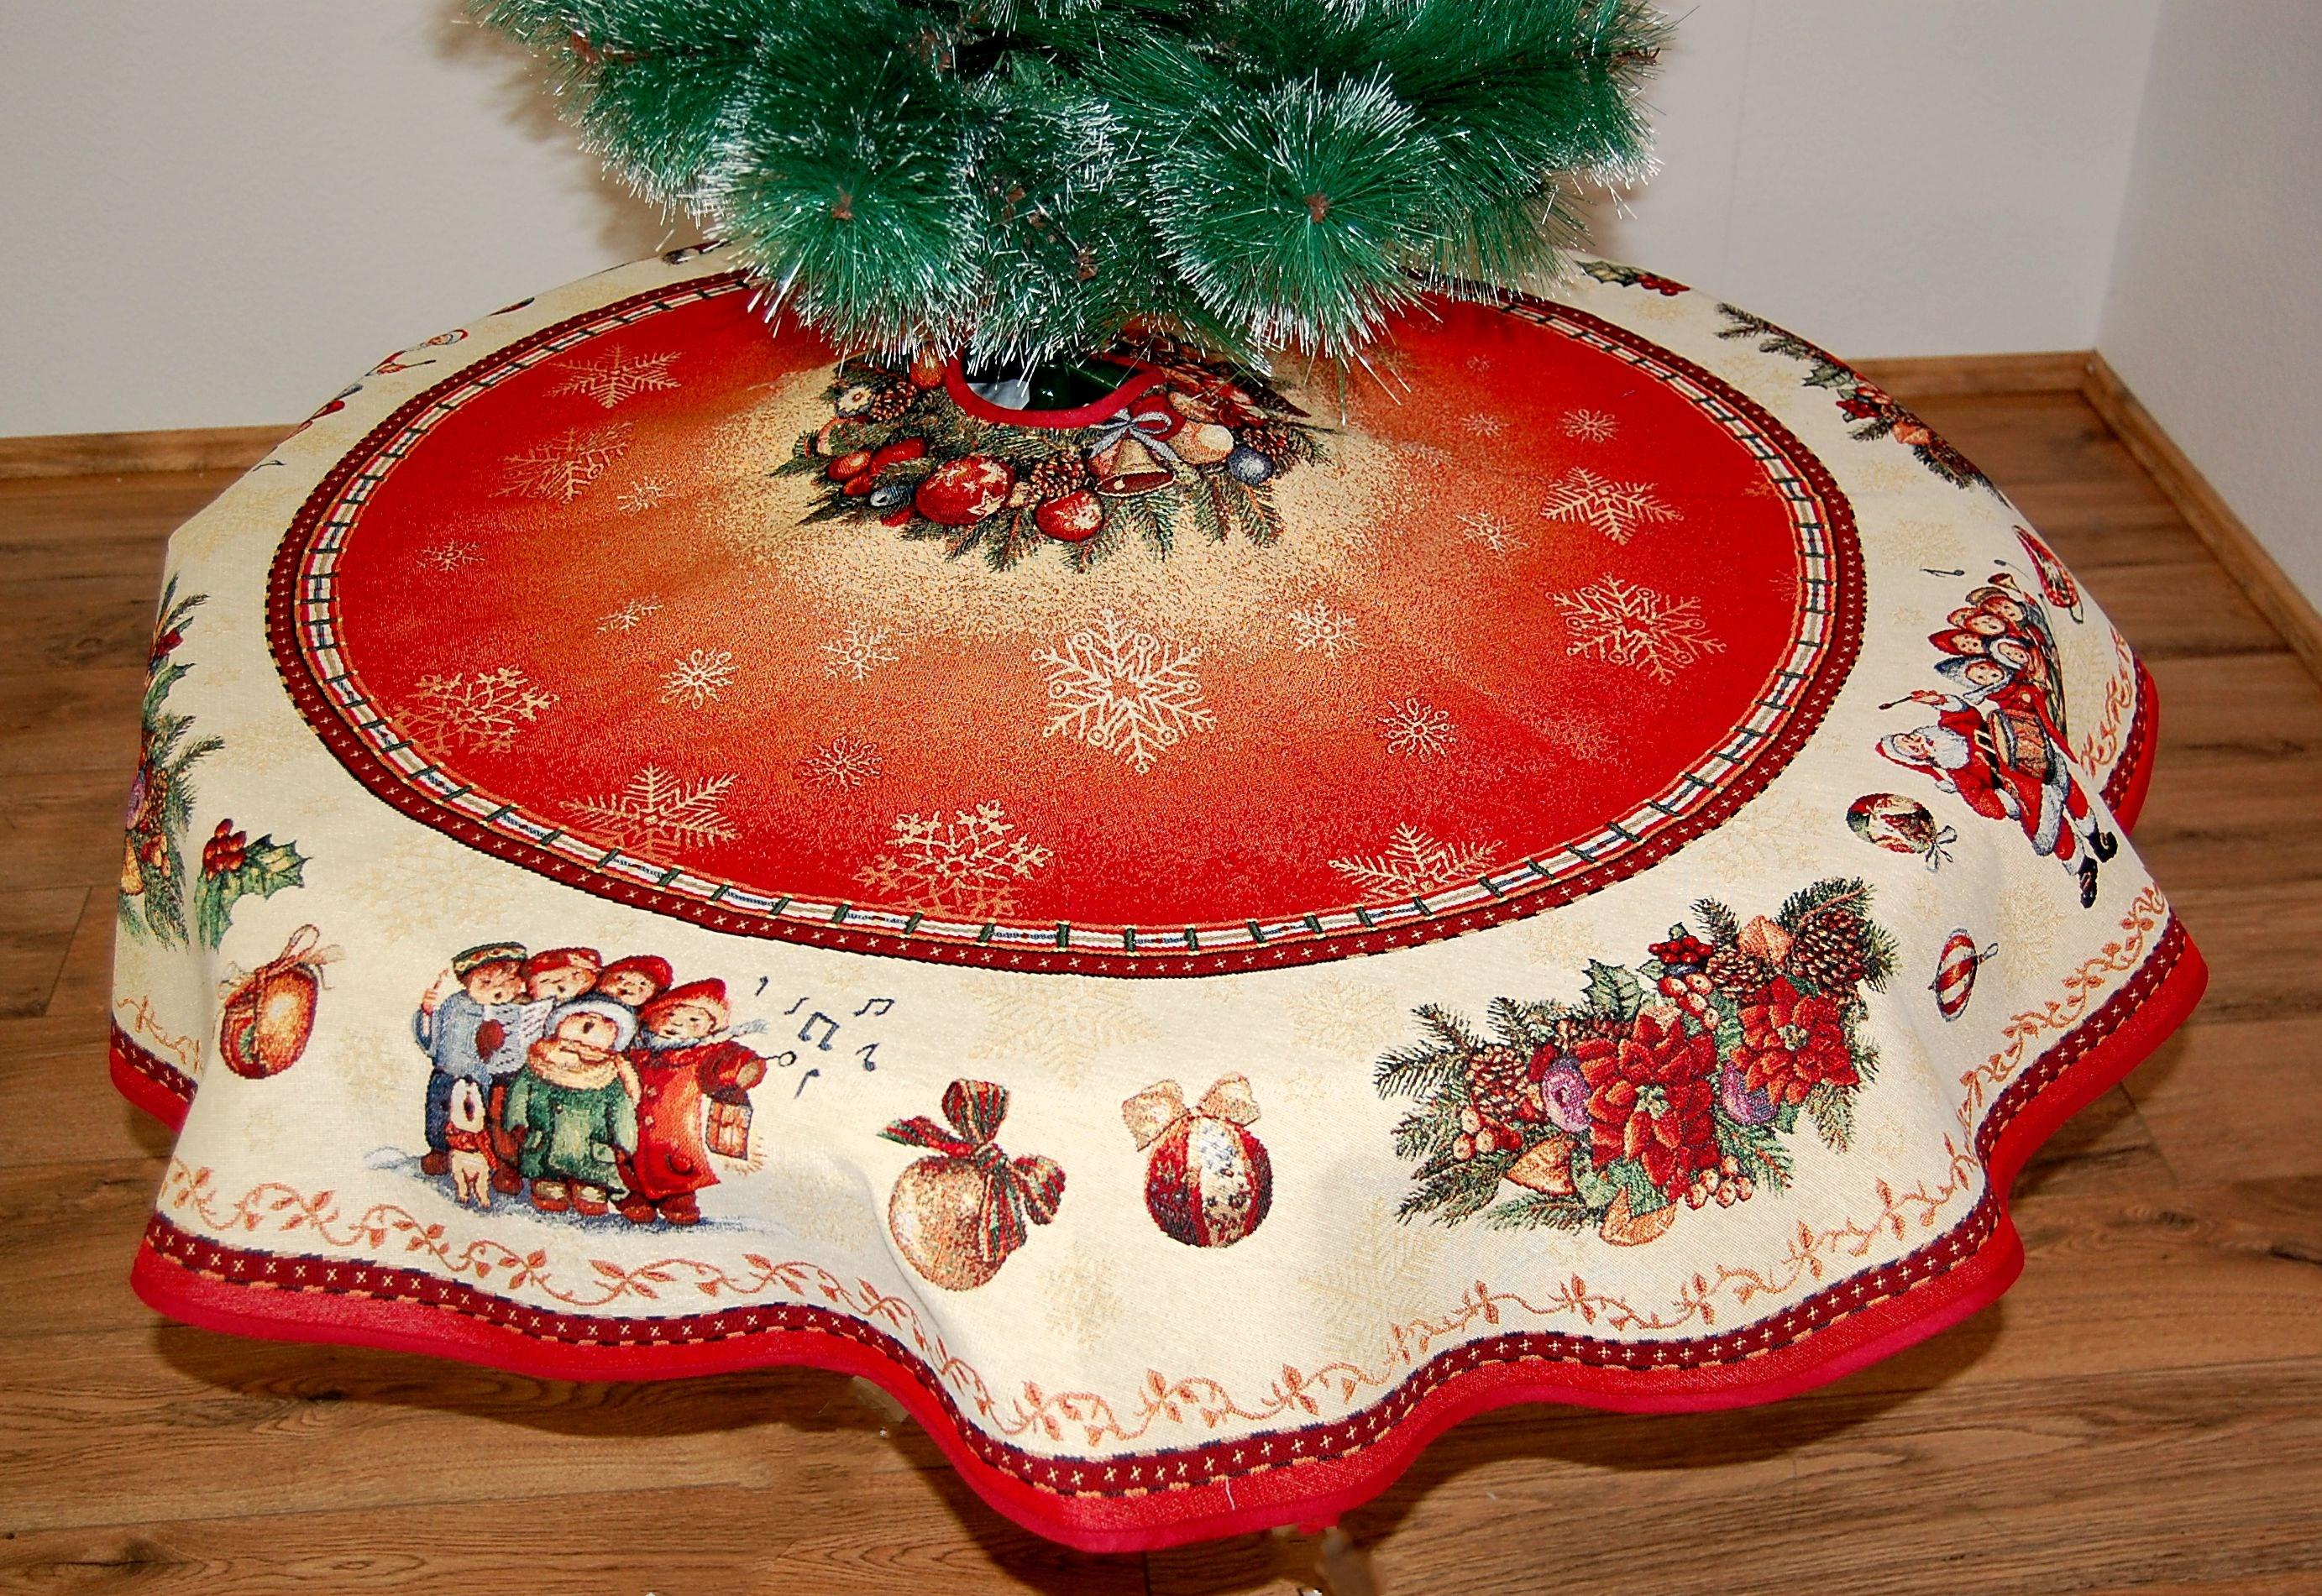 baumdecke gobelin 95 cm 130 cm weihnachten nostalgie rot bunt christbaumdecke ebay. Black Bedroom Furniture Sets. Home Design Ideas